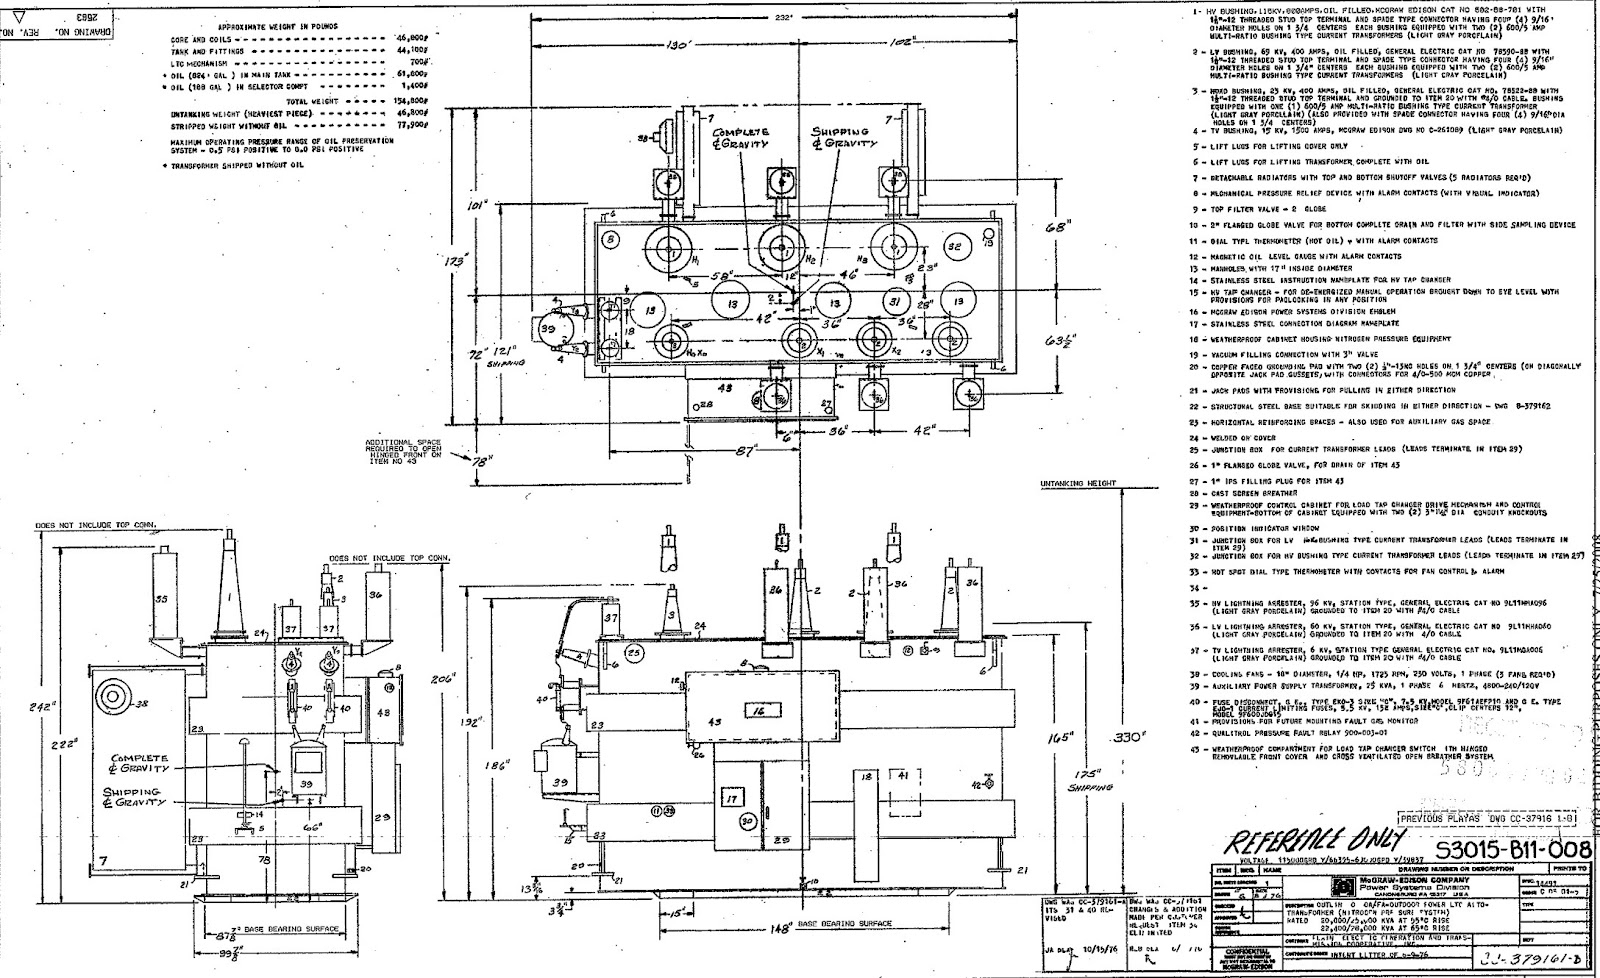 Wiring Diagram: 29 3 Phase Buck Boost Transformer Wiring